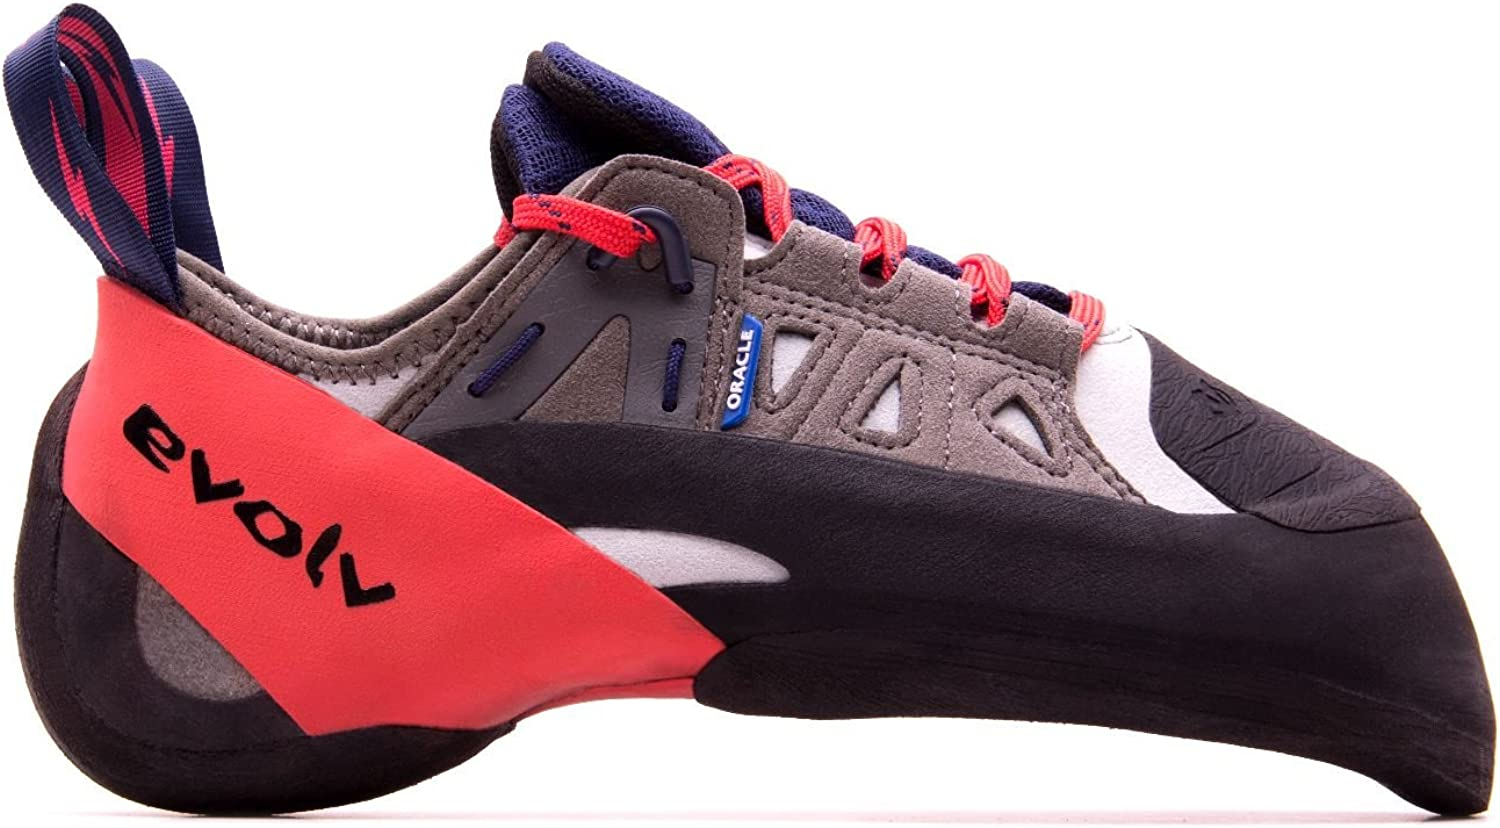 Evolv Oracle Climbing shoes - Men's